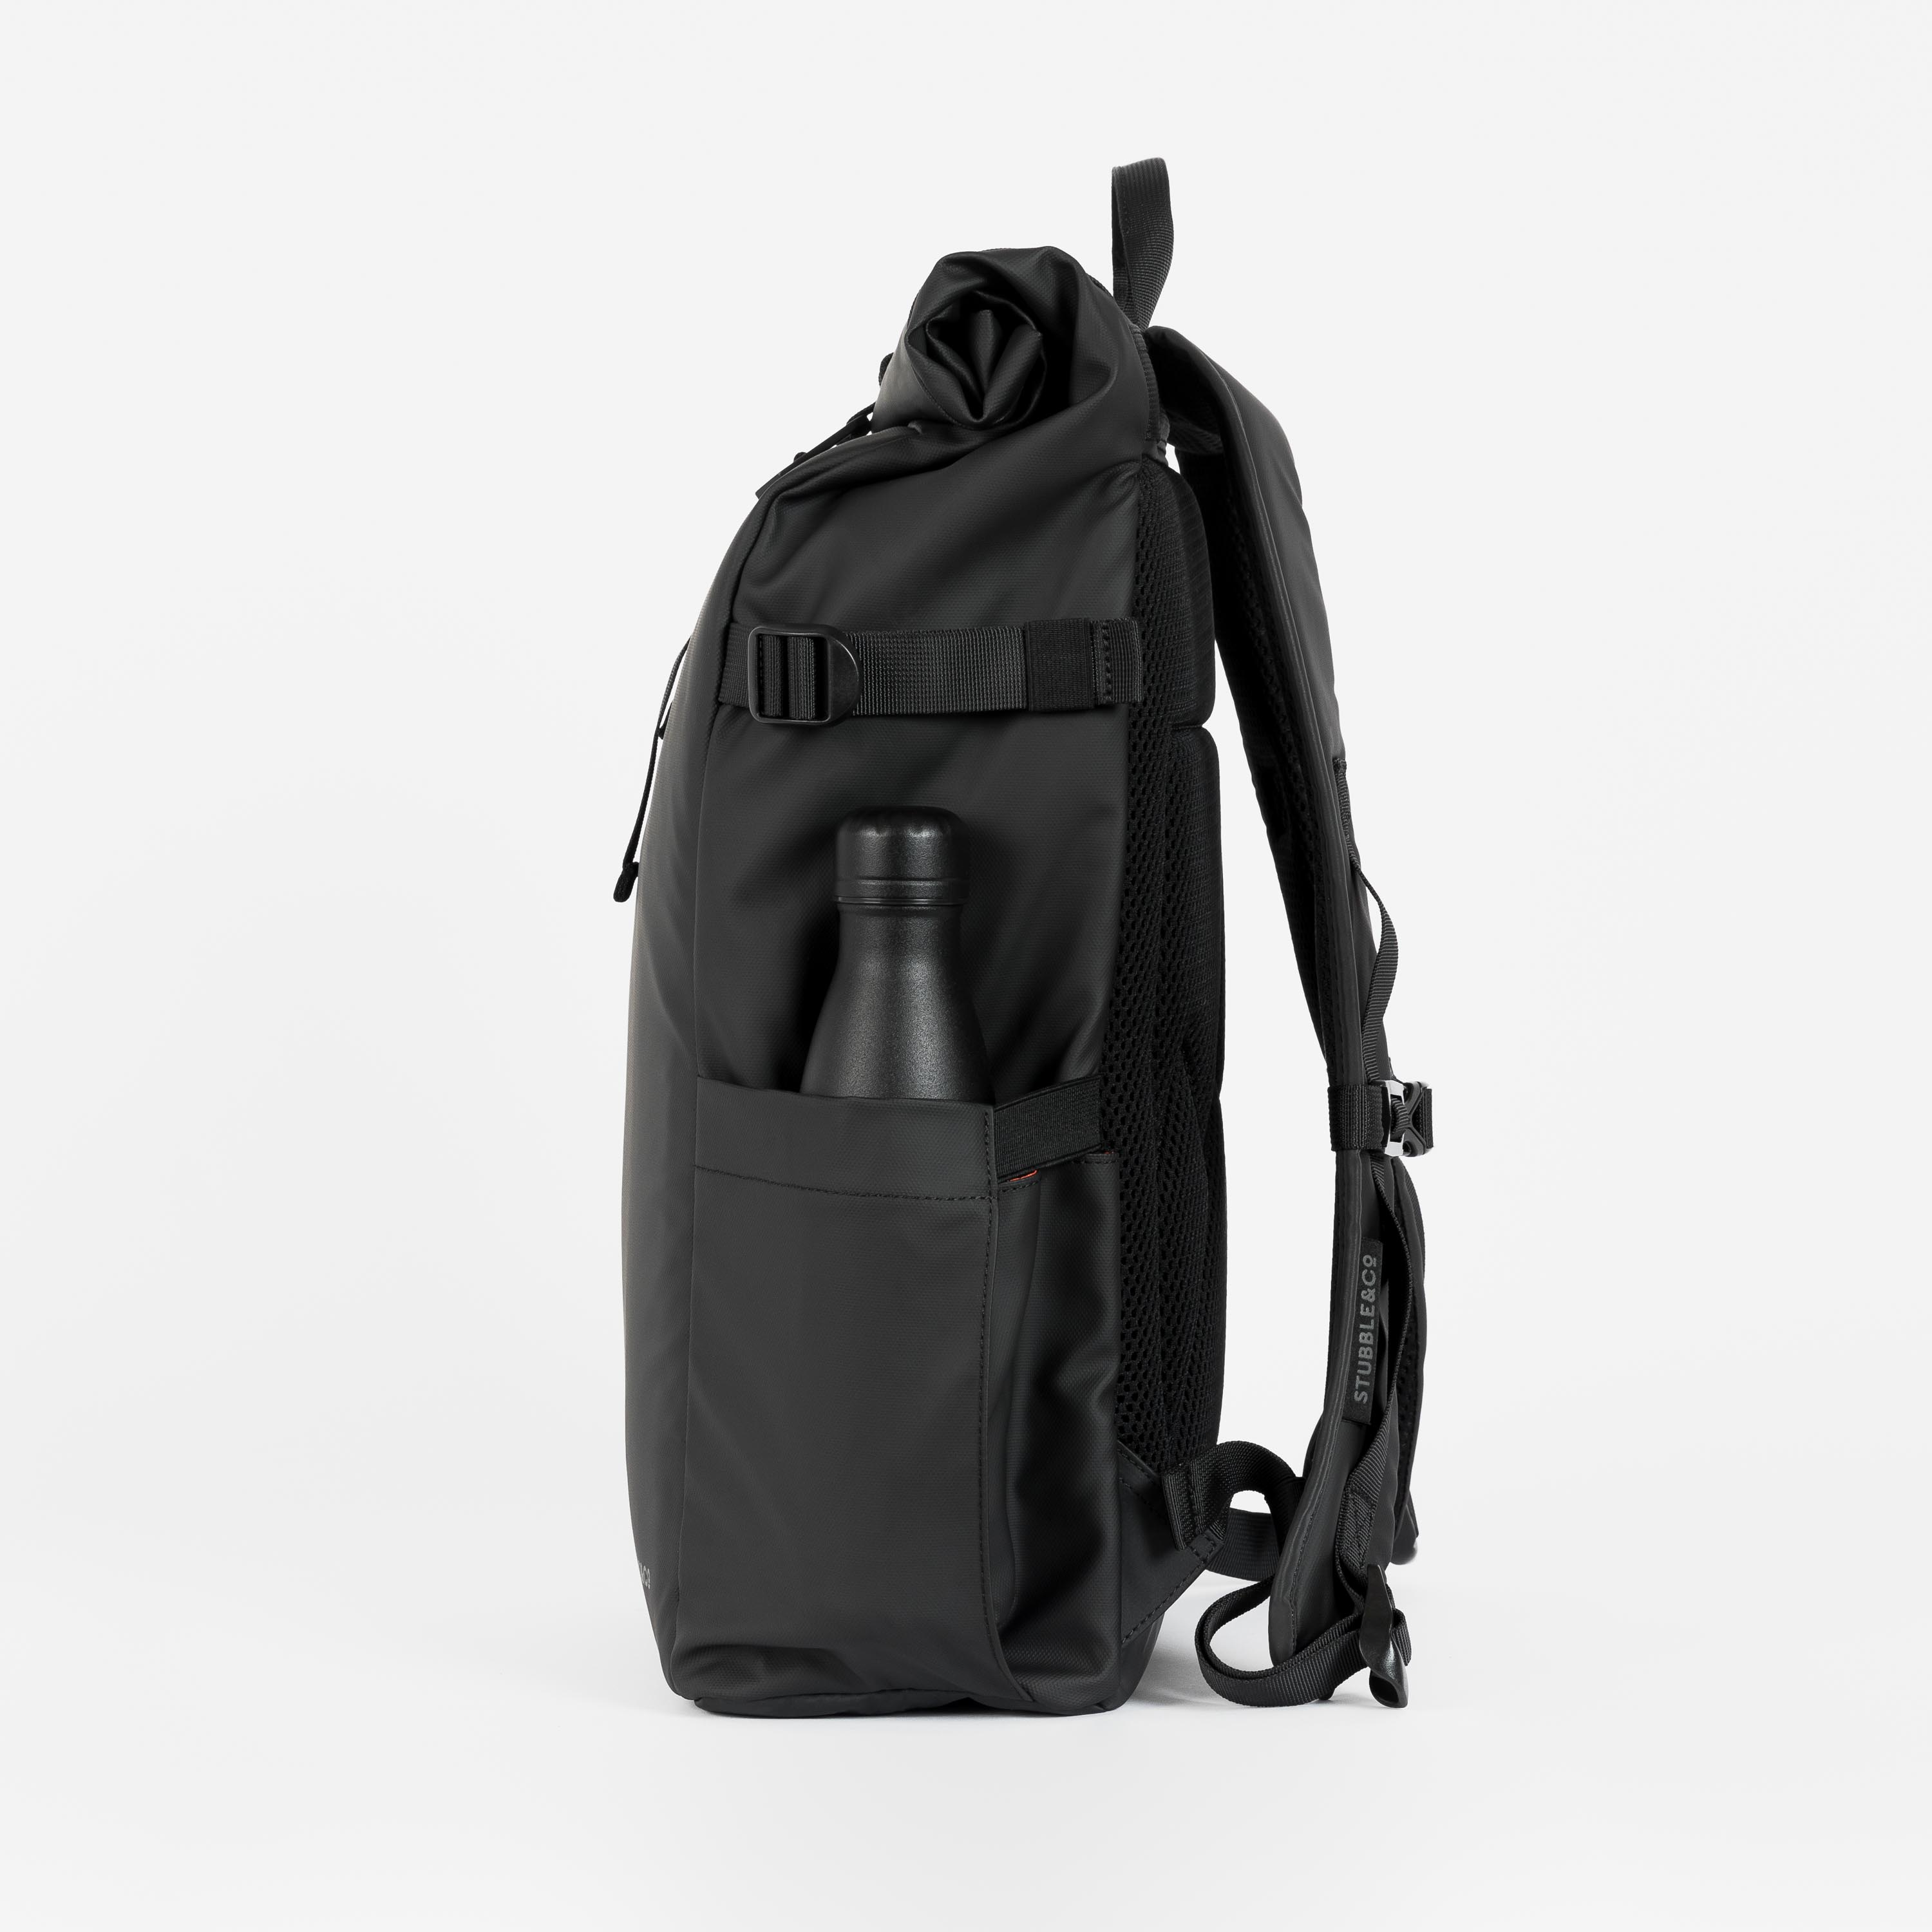 """The Roll Top. Made From Recycled Plastic. 16"""" Laptop Pocket., All Black"""